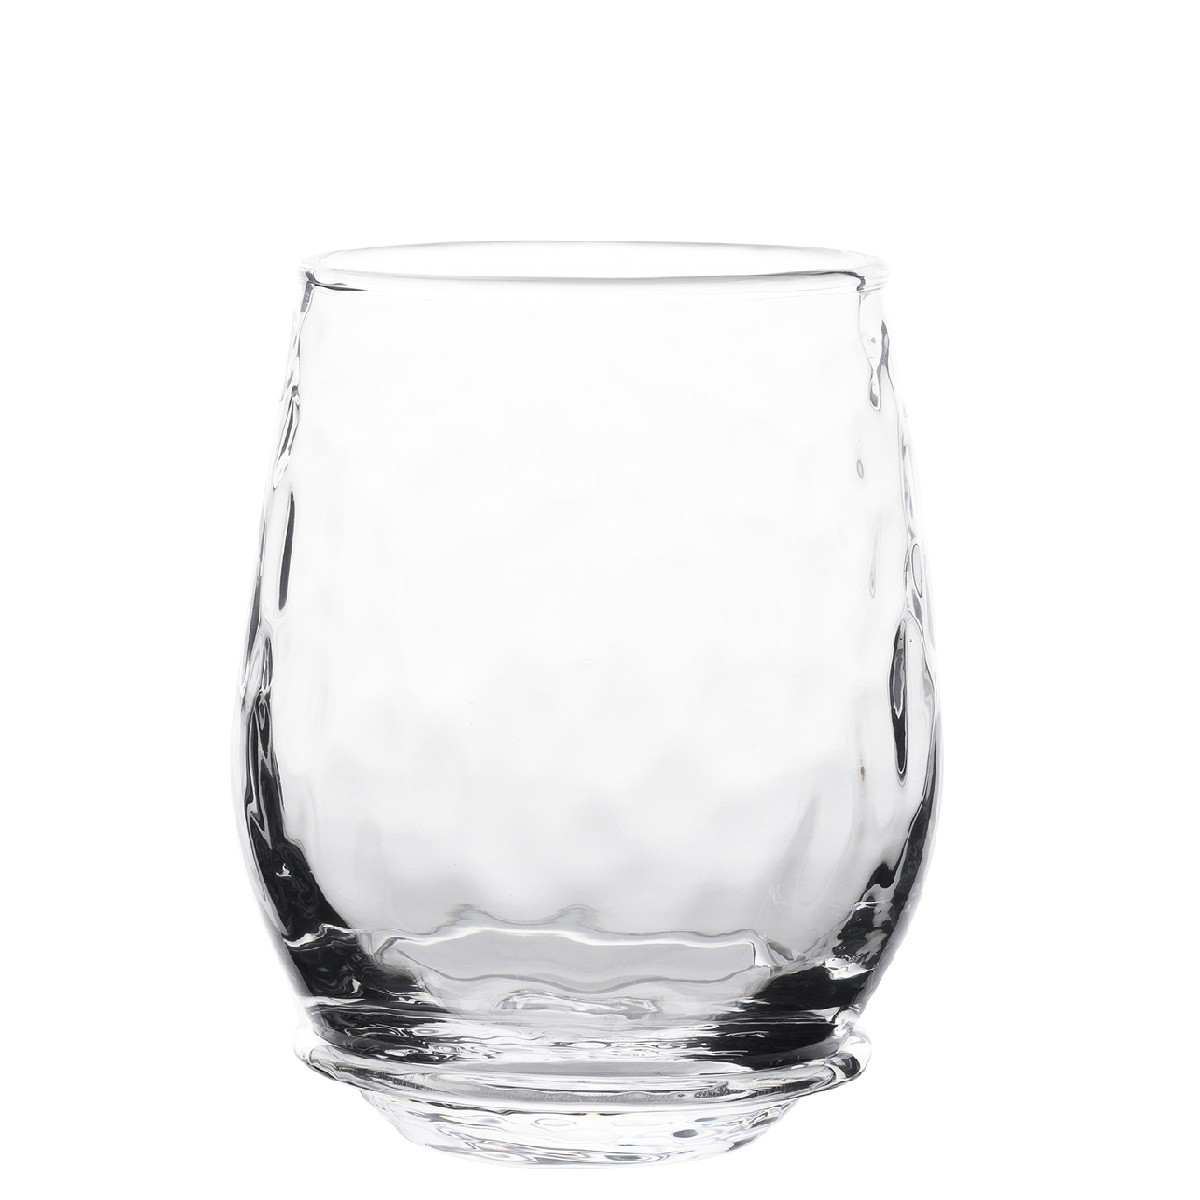 Carine by Juliska Stemless White Wine Glass